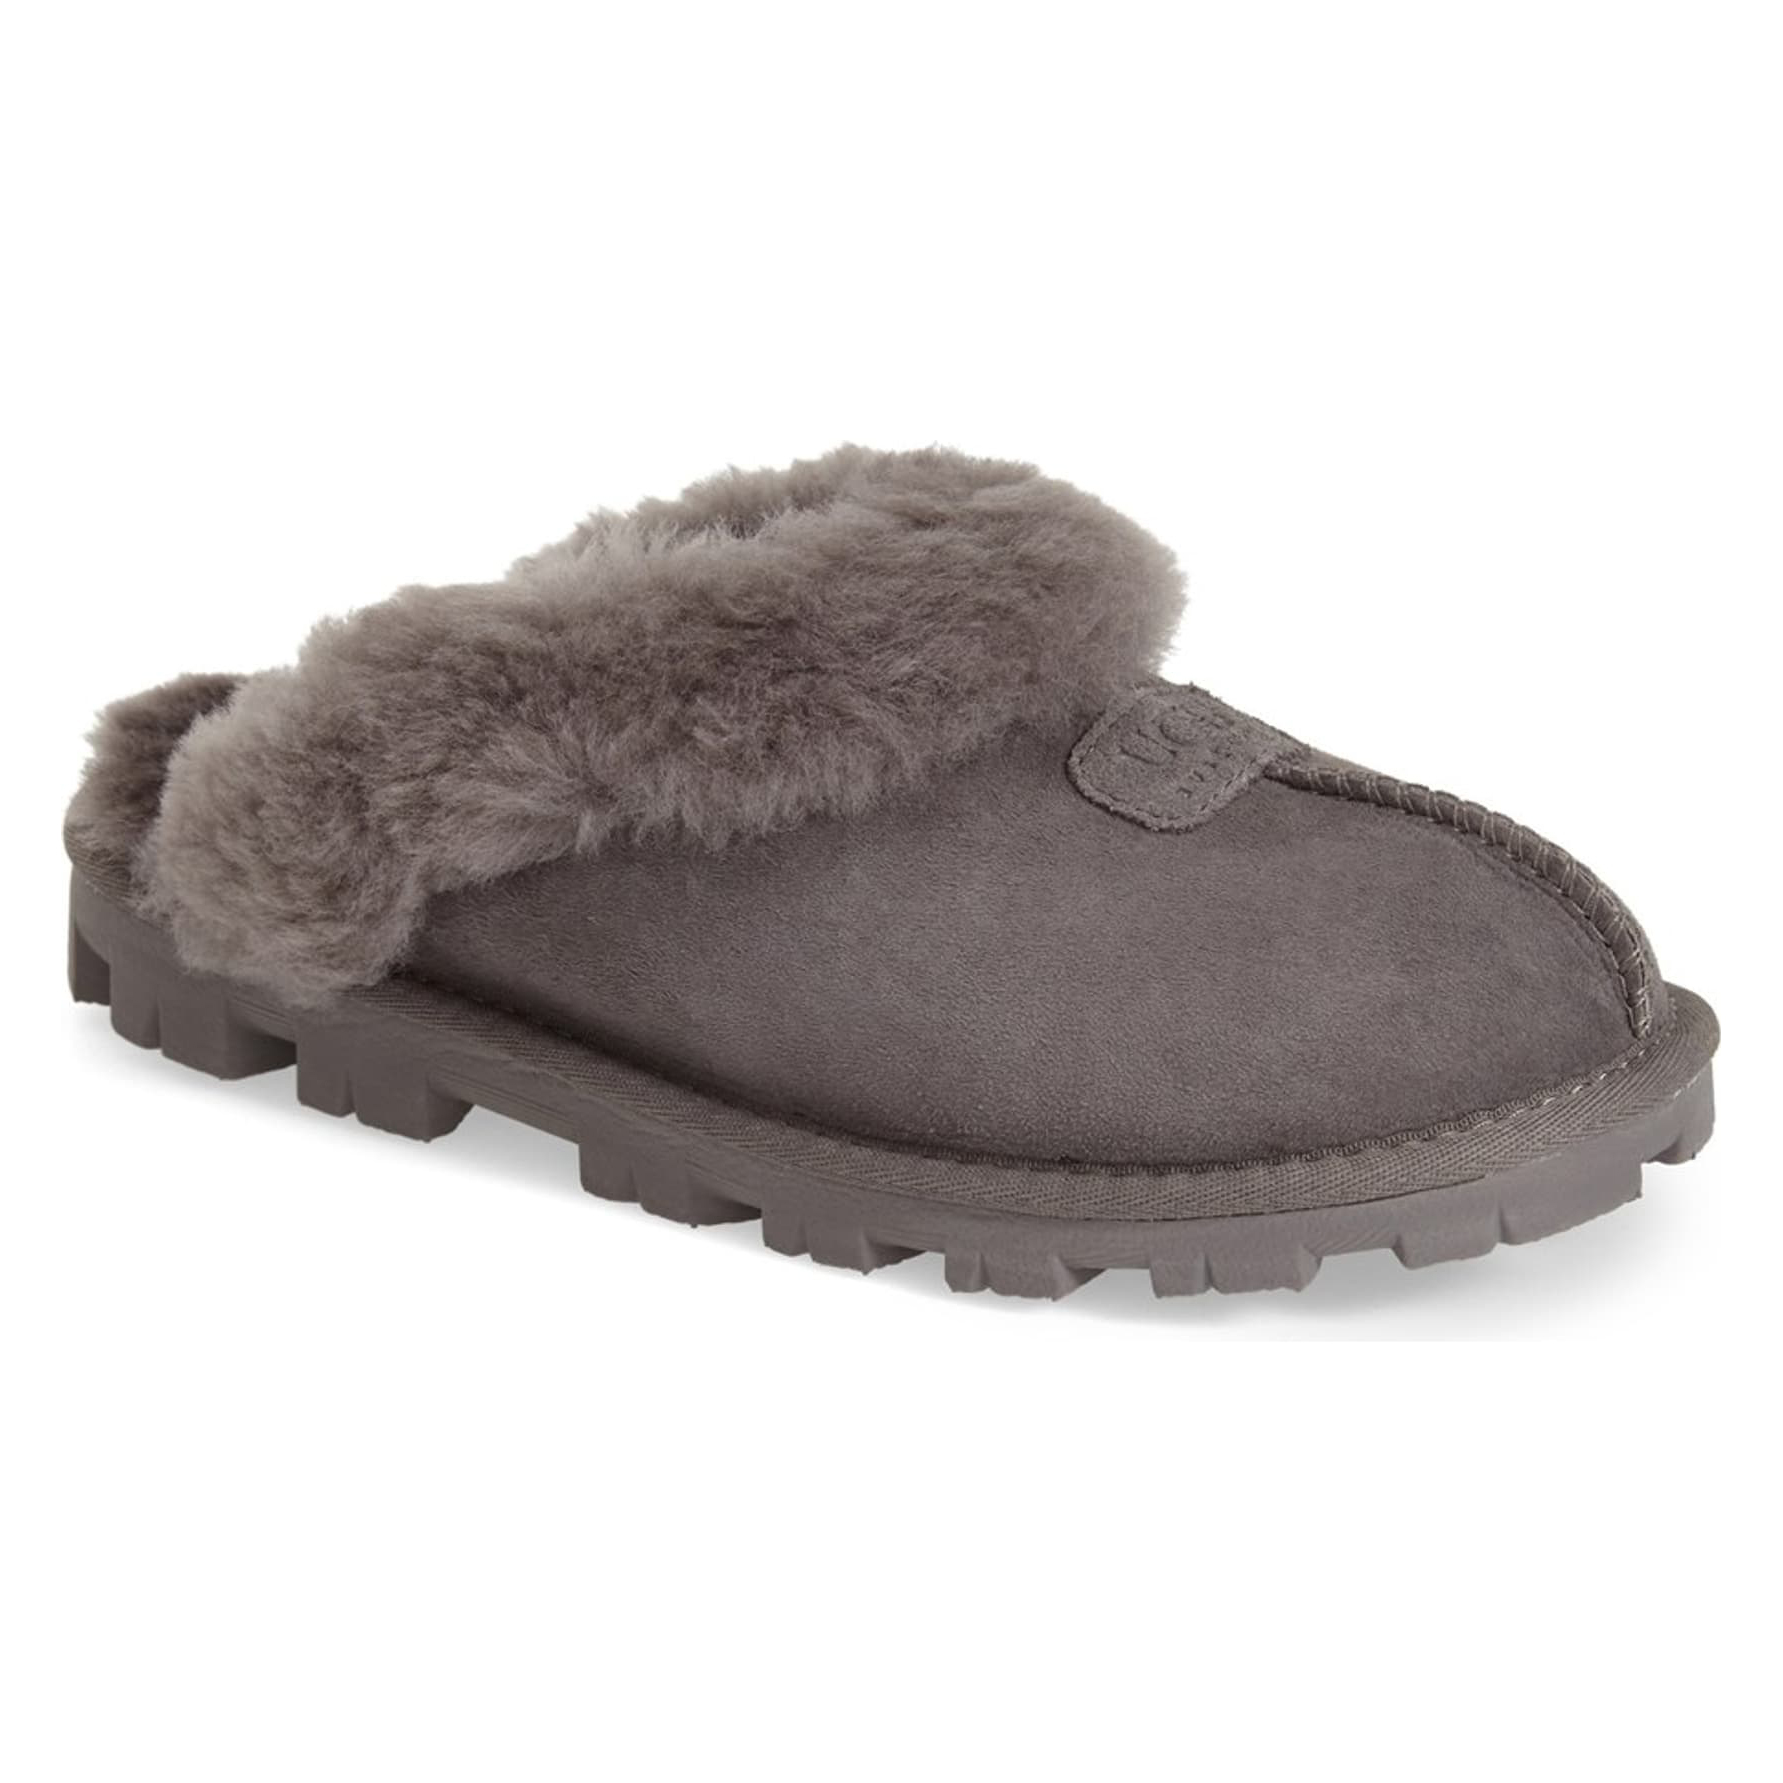 Ugg Genuine Shearling Slipper in Grey